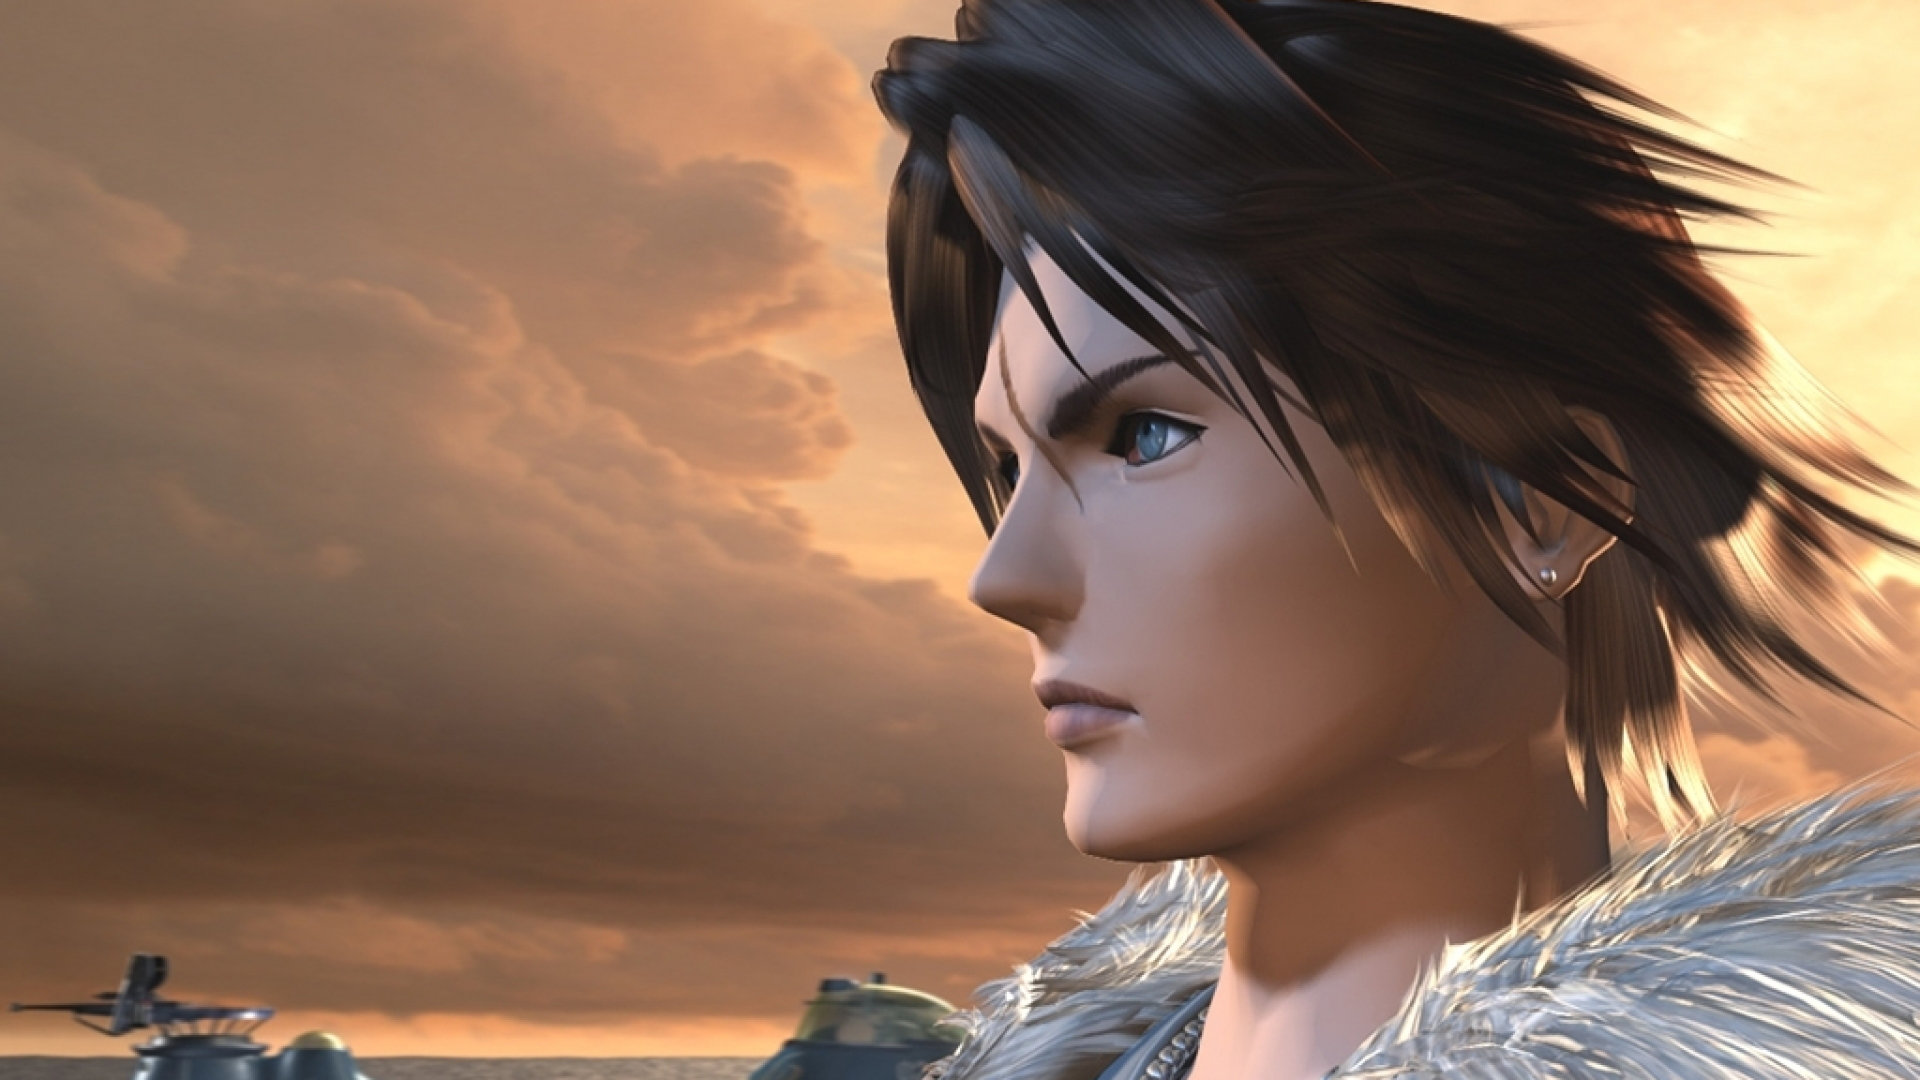 Final Fantasy Viii Ff8 Wallpapers Hd For Desktop Backgrounds